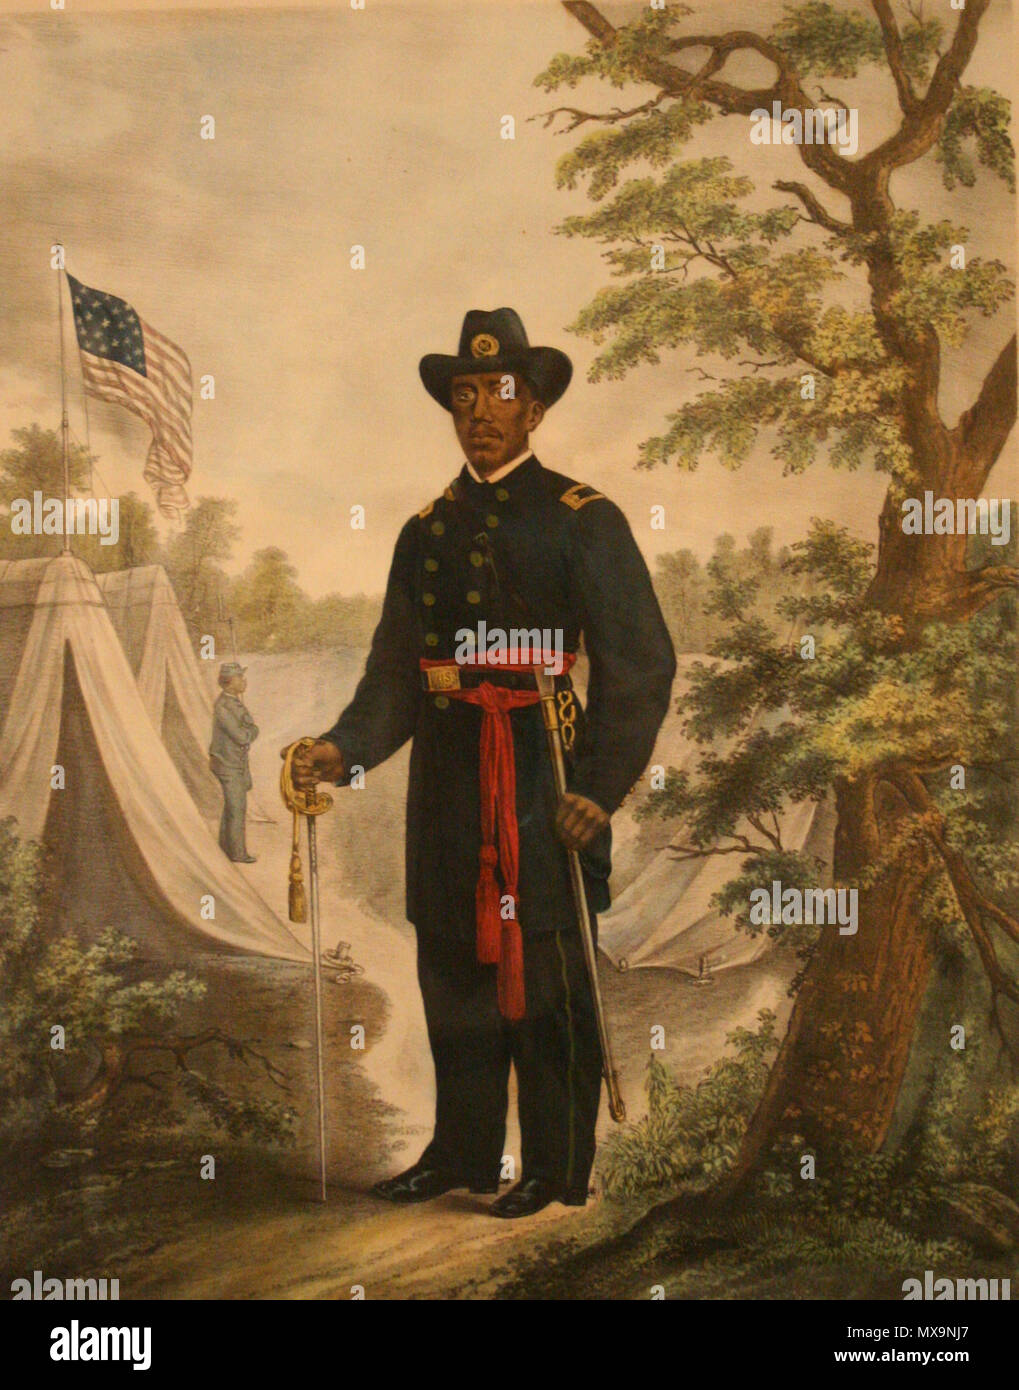 . Martin R. Delaney, the only black officer who received the rank of major during the Civil War. This distinction recognized Delany's stature as a black leader, although it proved to be mostly symbolic. In the decade before the war, Delany had been active in the movement to relocate free blacks to Liberia, where they might have greater freedoms. In 1863 following President Lincoln's Emancipation Proclamation and the call for the enlistment of black militia regiments, Delany began actively recruiting in New England. The chance to organize his own unit came in February 1865, when Lincoln commiss - Stock Image